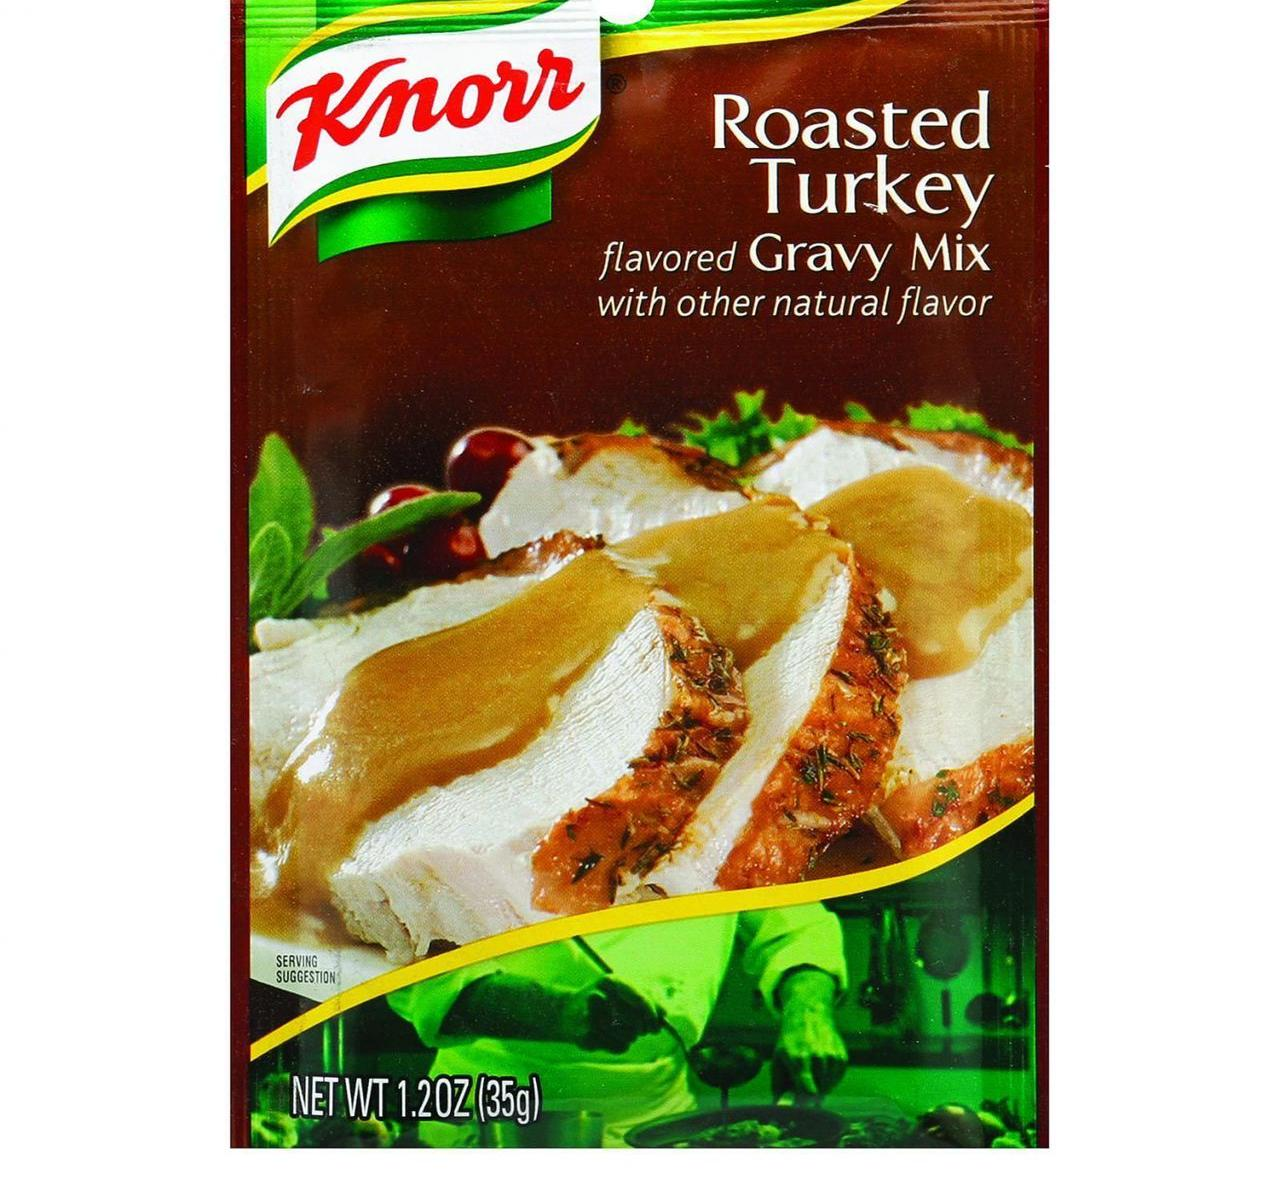 Knorr Gravy Mix - Roasted Turkey Flavored - 1.2 oz - Case...